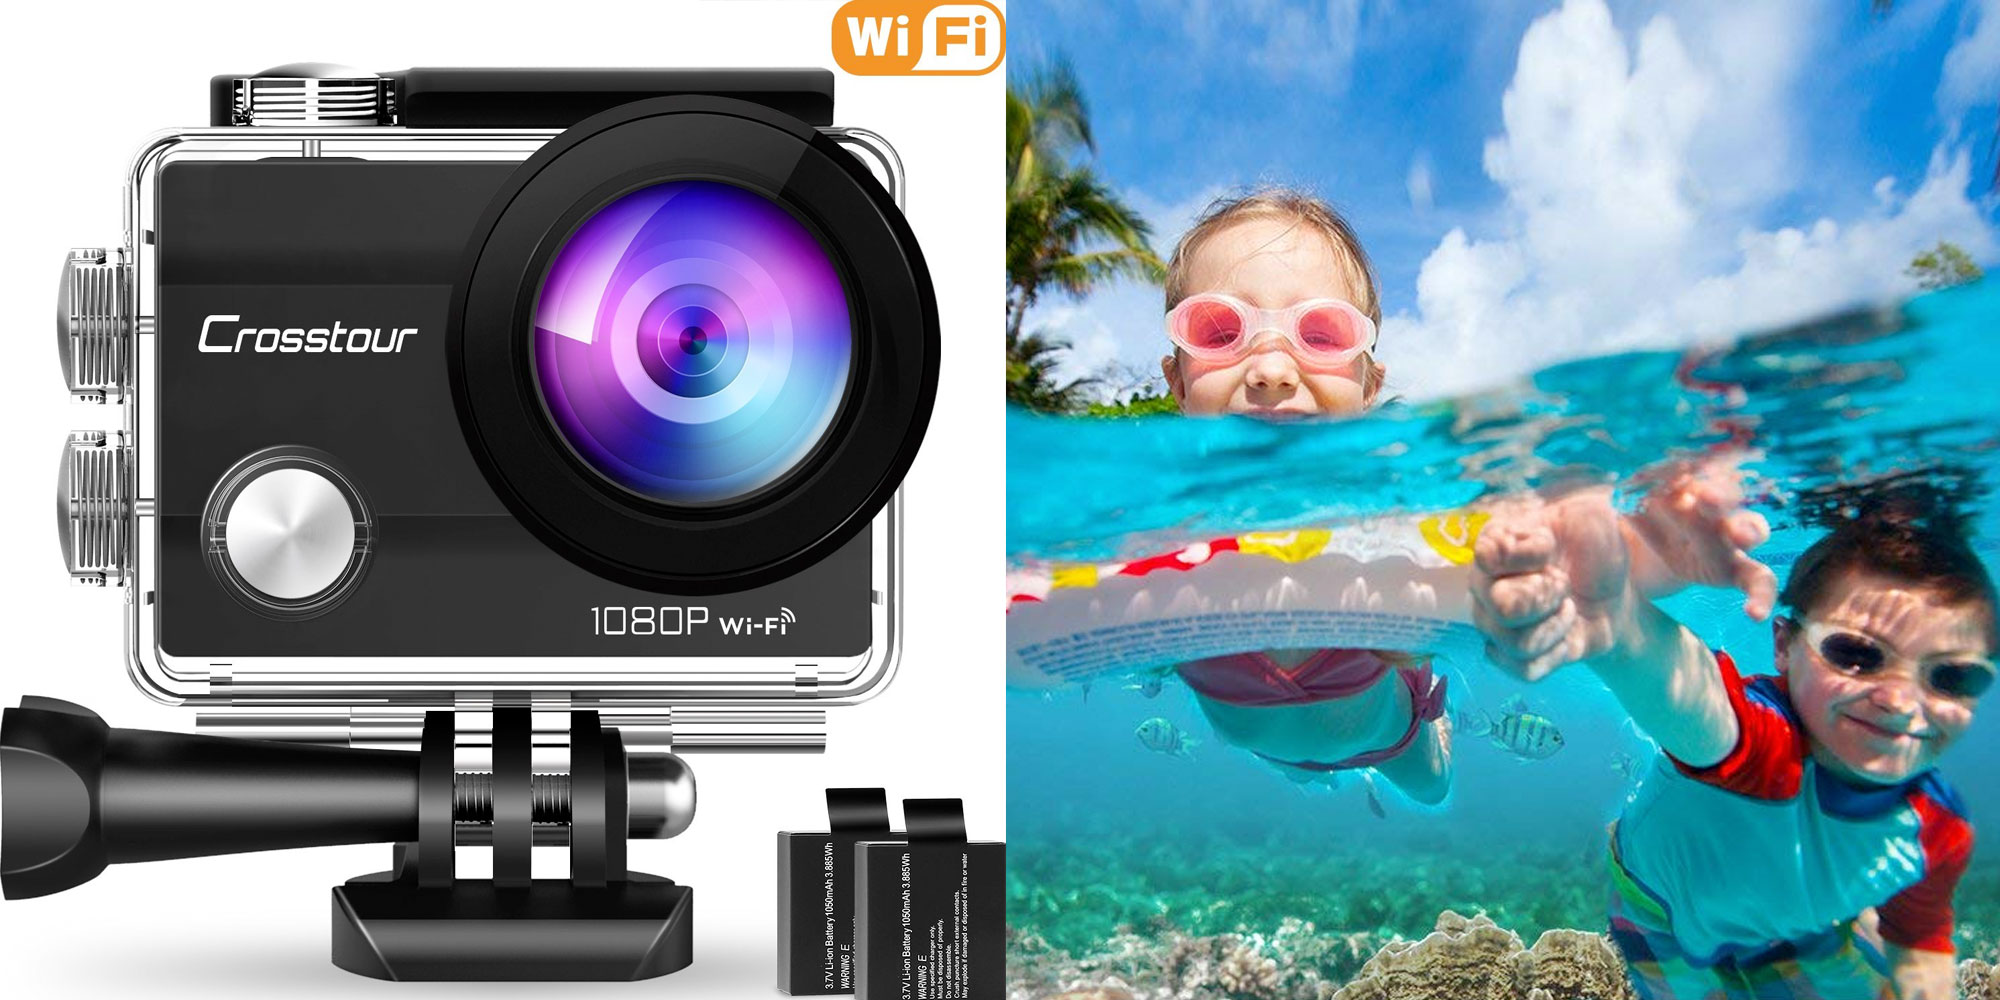 Capture everything w/ this budget-friendly 1080p waterproof action camera at $29